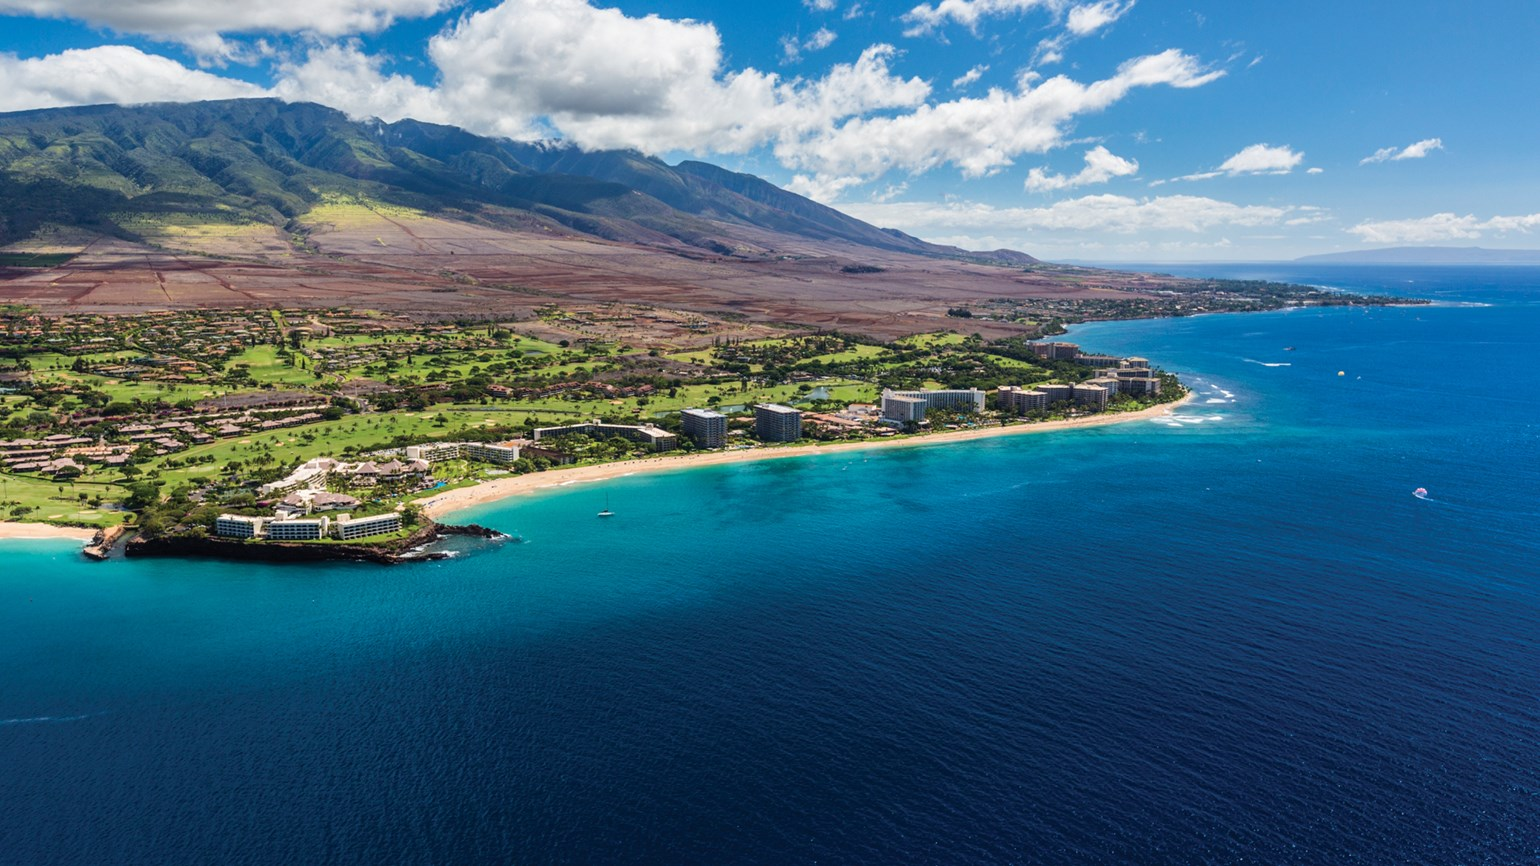 Hvcbs online education and certification program aims to make hvcbs online education and certification program aims to make agents aloha state specialists travel weekly 1betcityfo Gallery